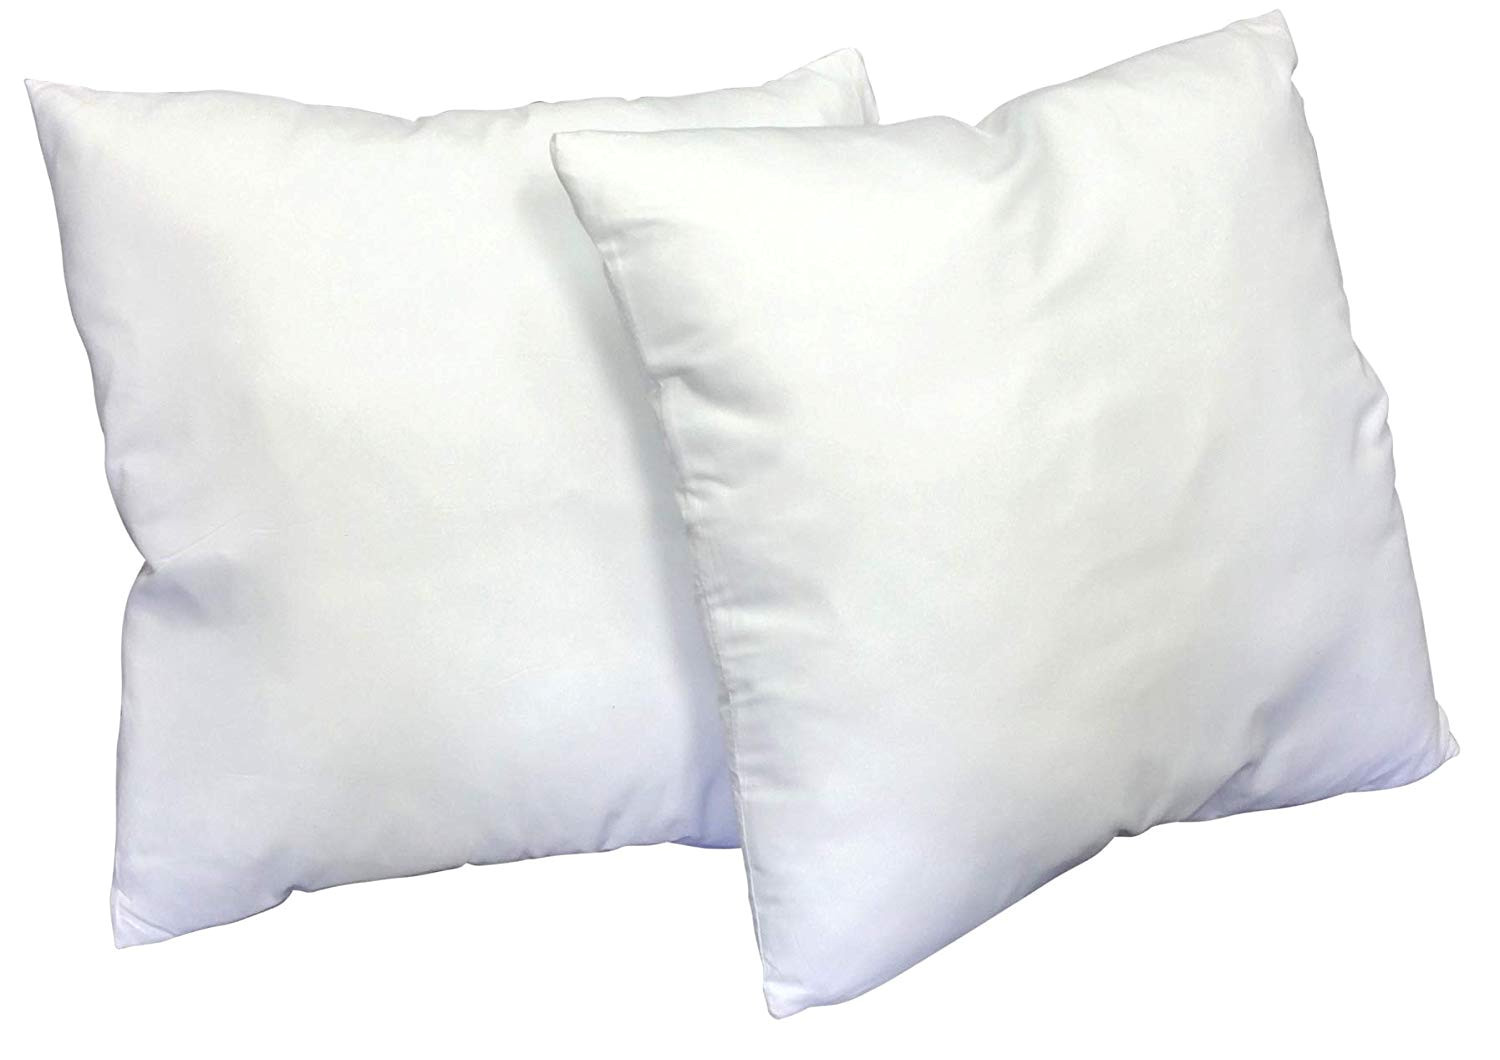 amazon com web linens inc 23 x23 set of 2 pillow inserts w pillow protectors 100 gsm microfiber cover exclusively by blowout bedding rn 142035